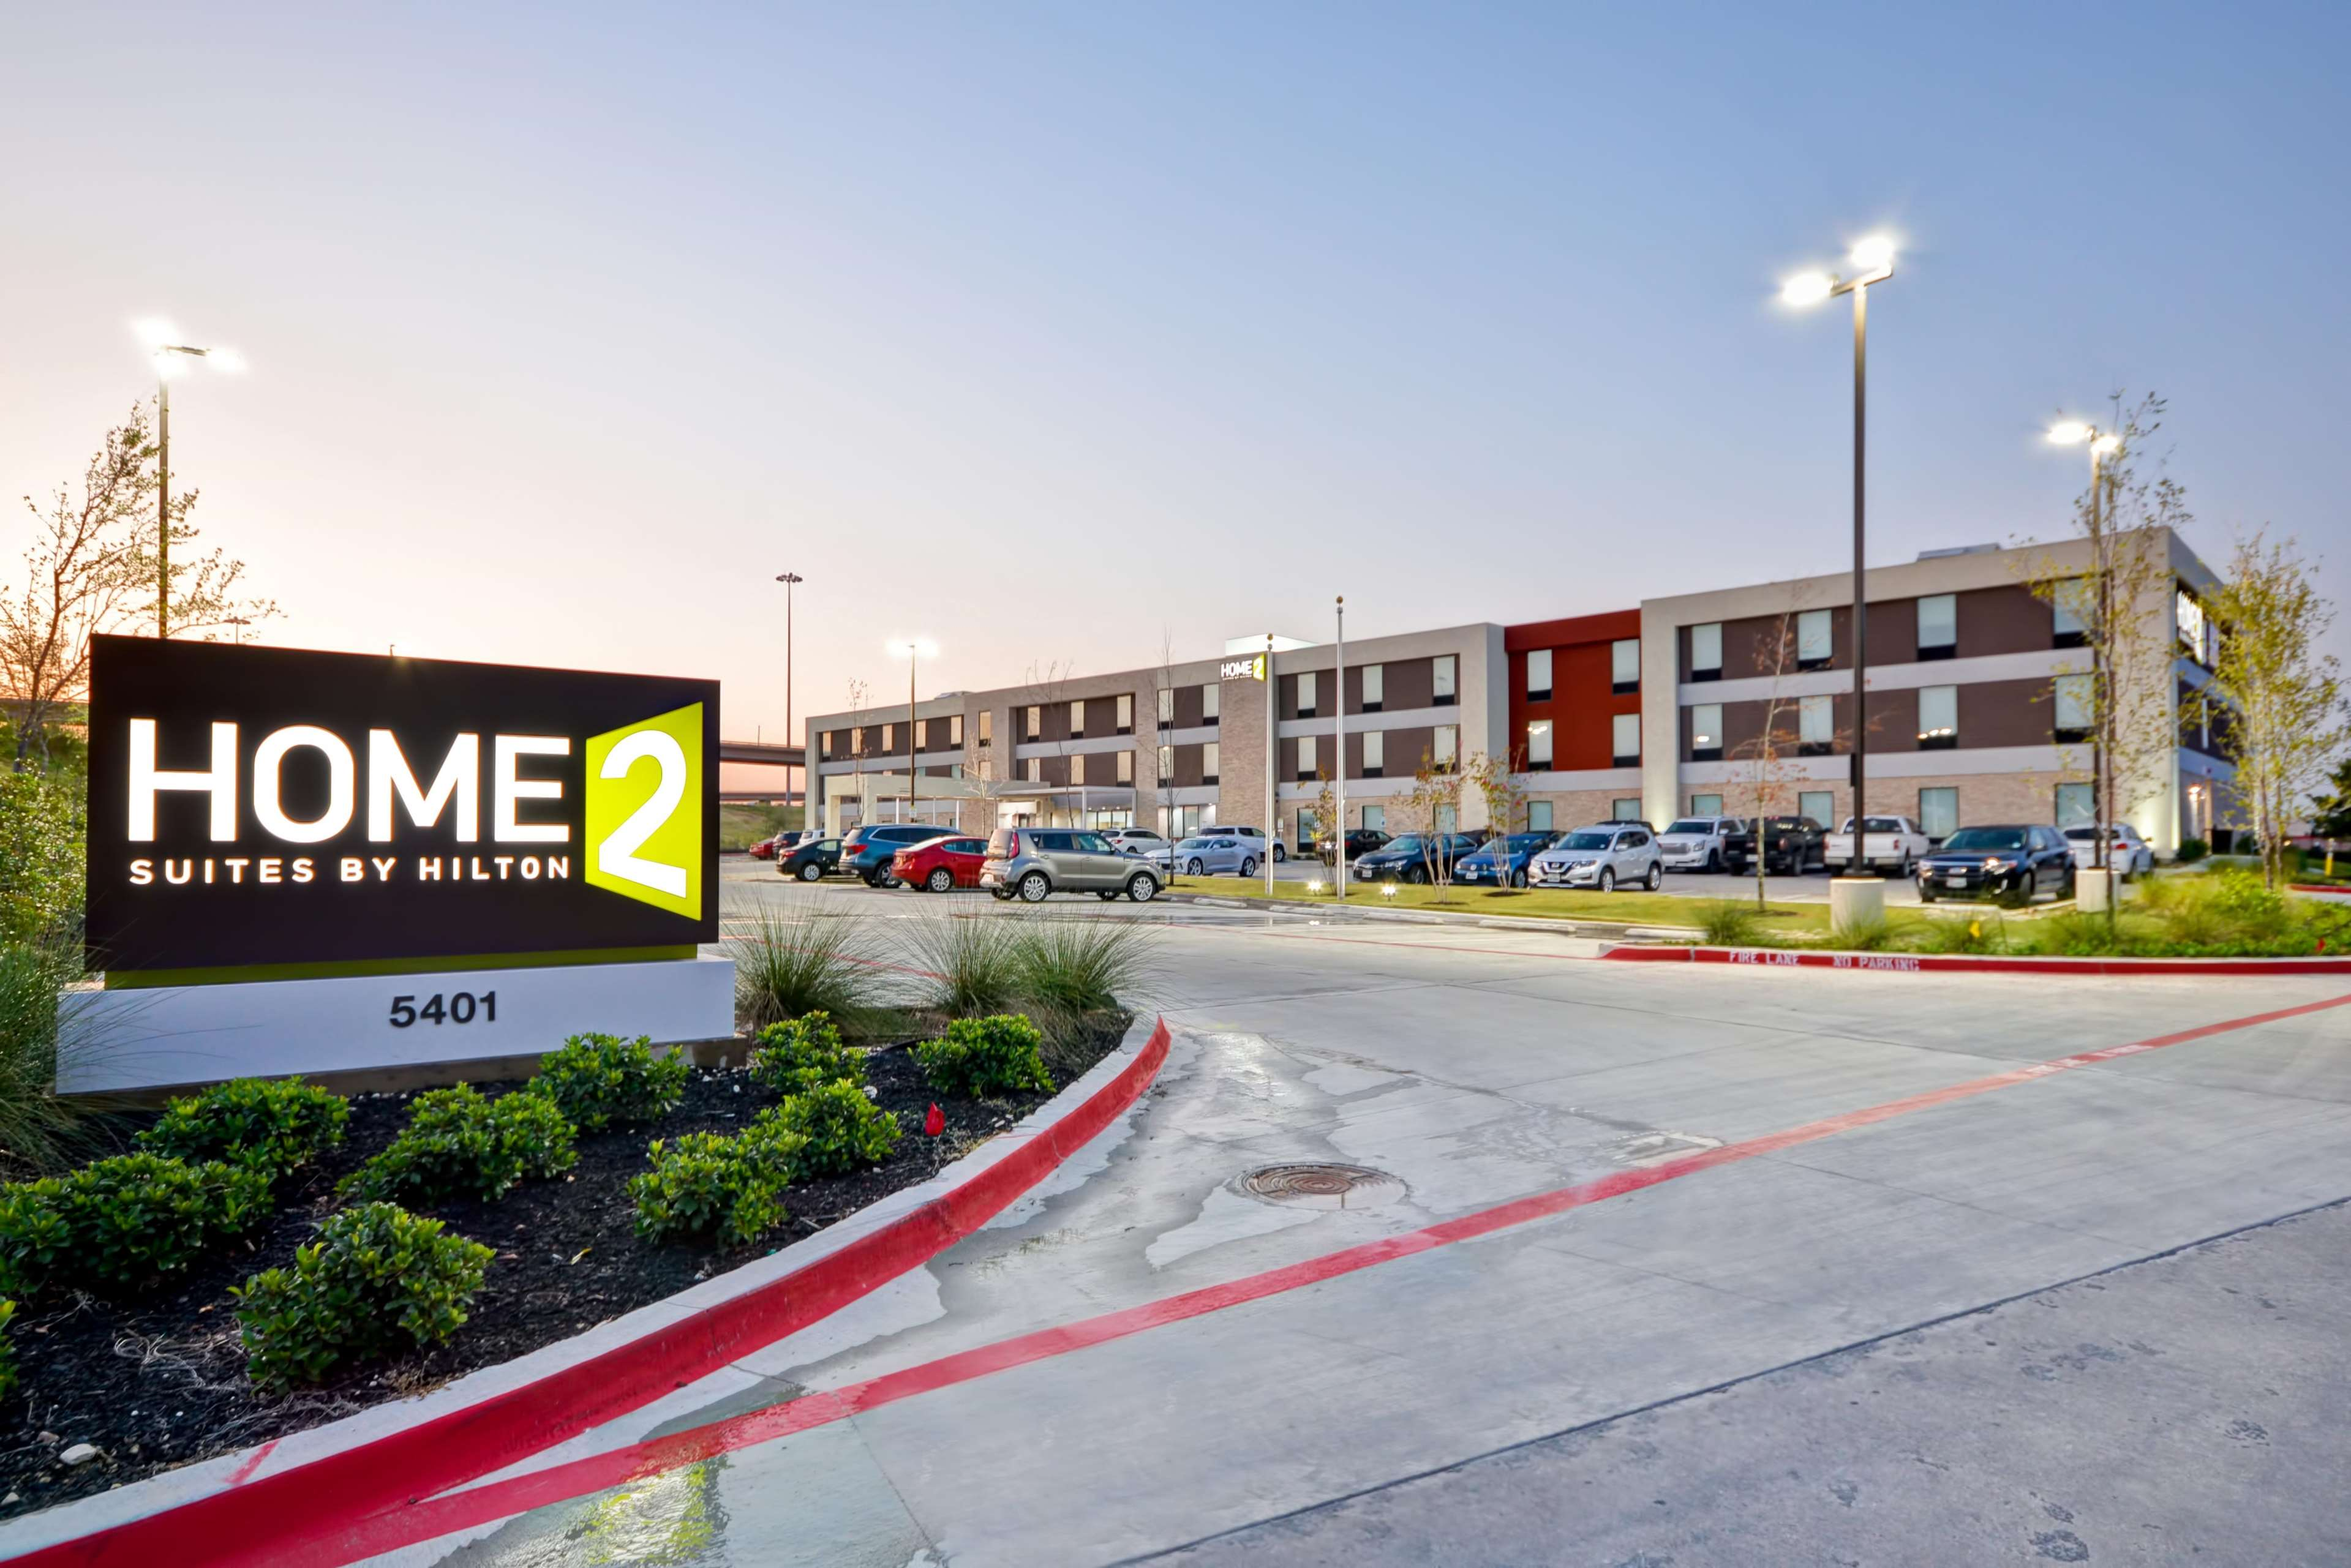 Home2 Suites by Hilton Fort Worth Southwest Cityview image 0